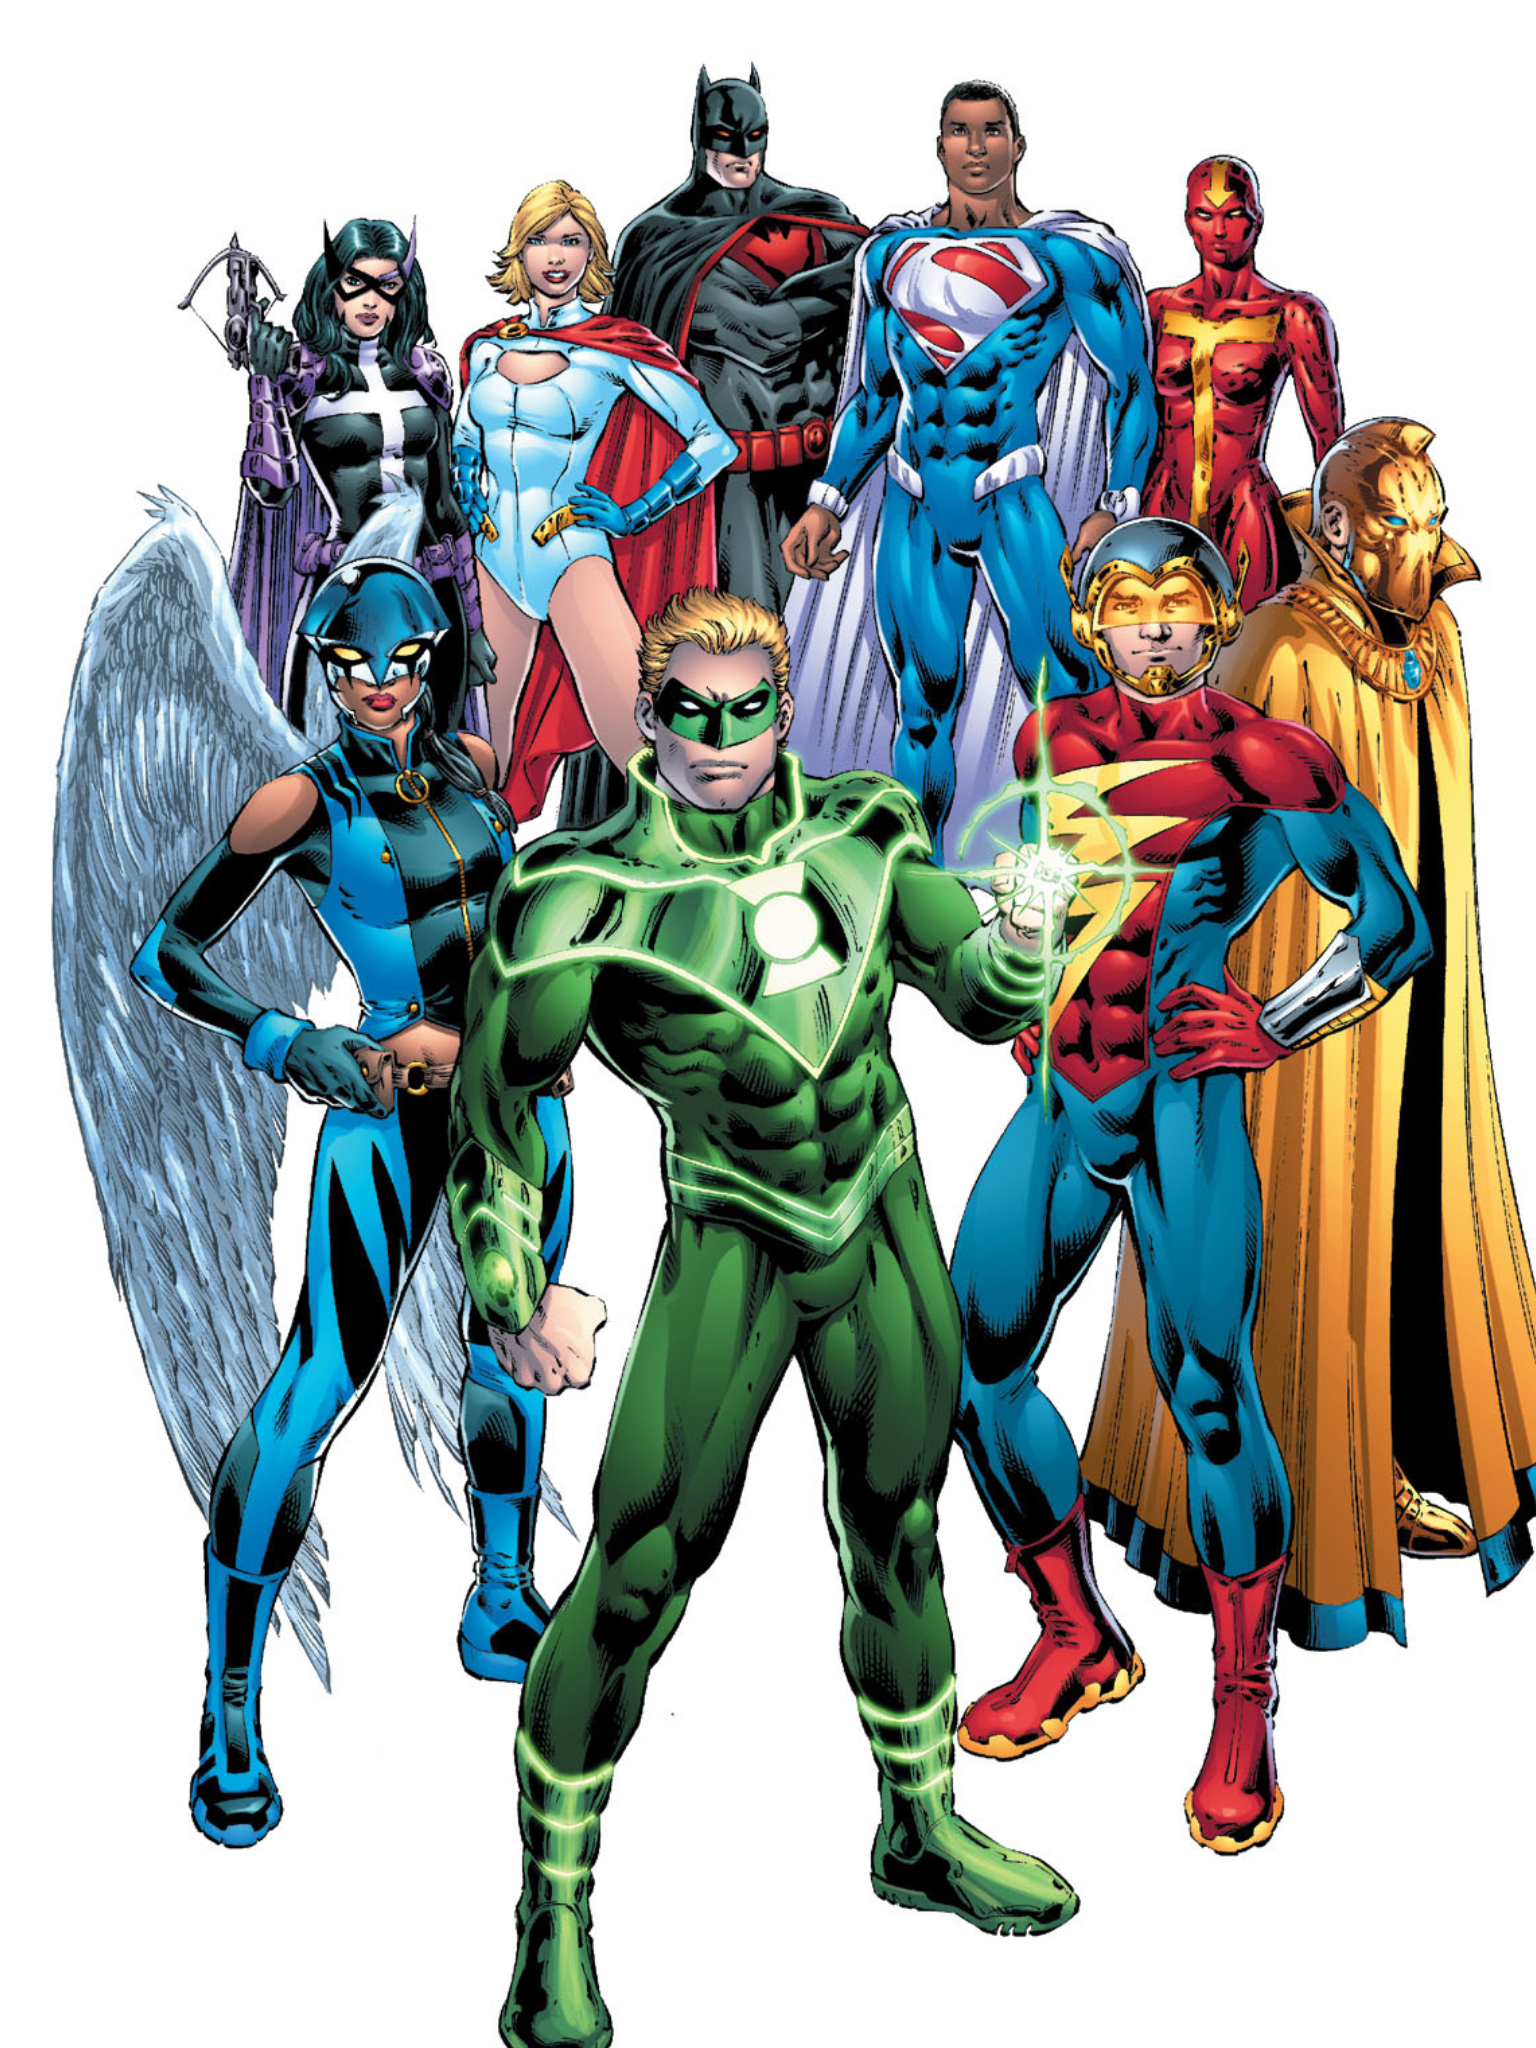 Pin by Lee Harding on DC's Multiversity | Dc comics superheroes, Dc comics  heroes, Dc comics